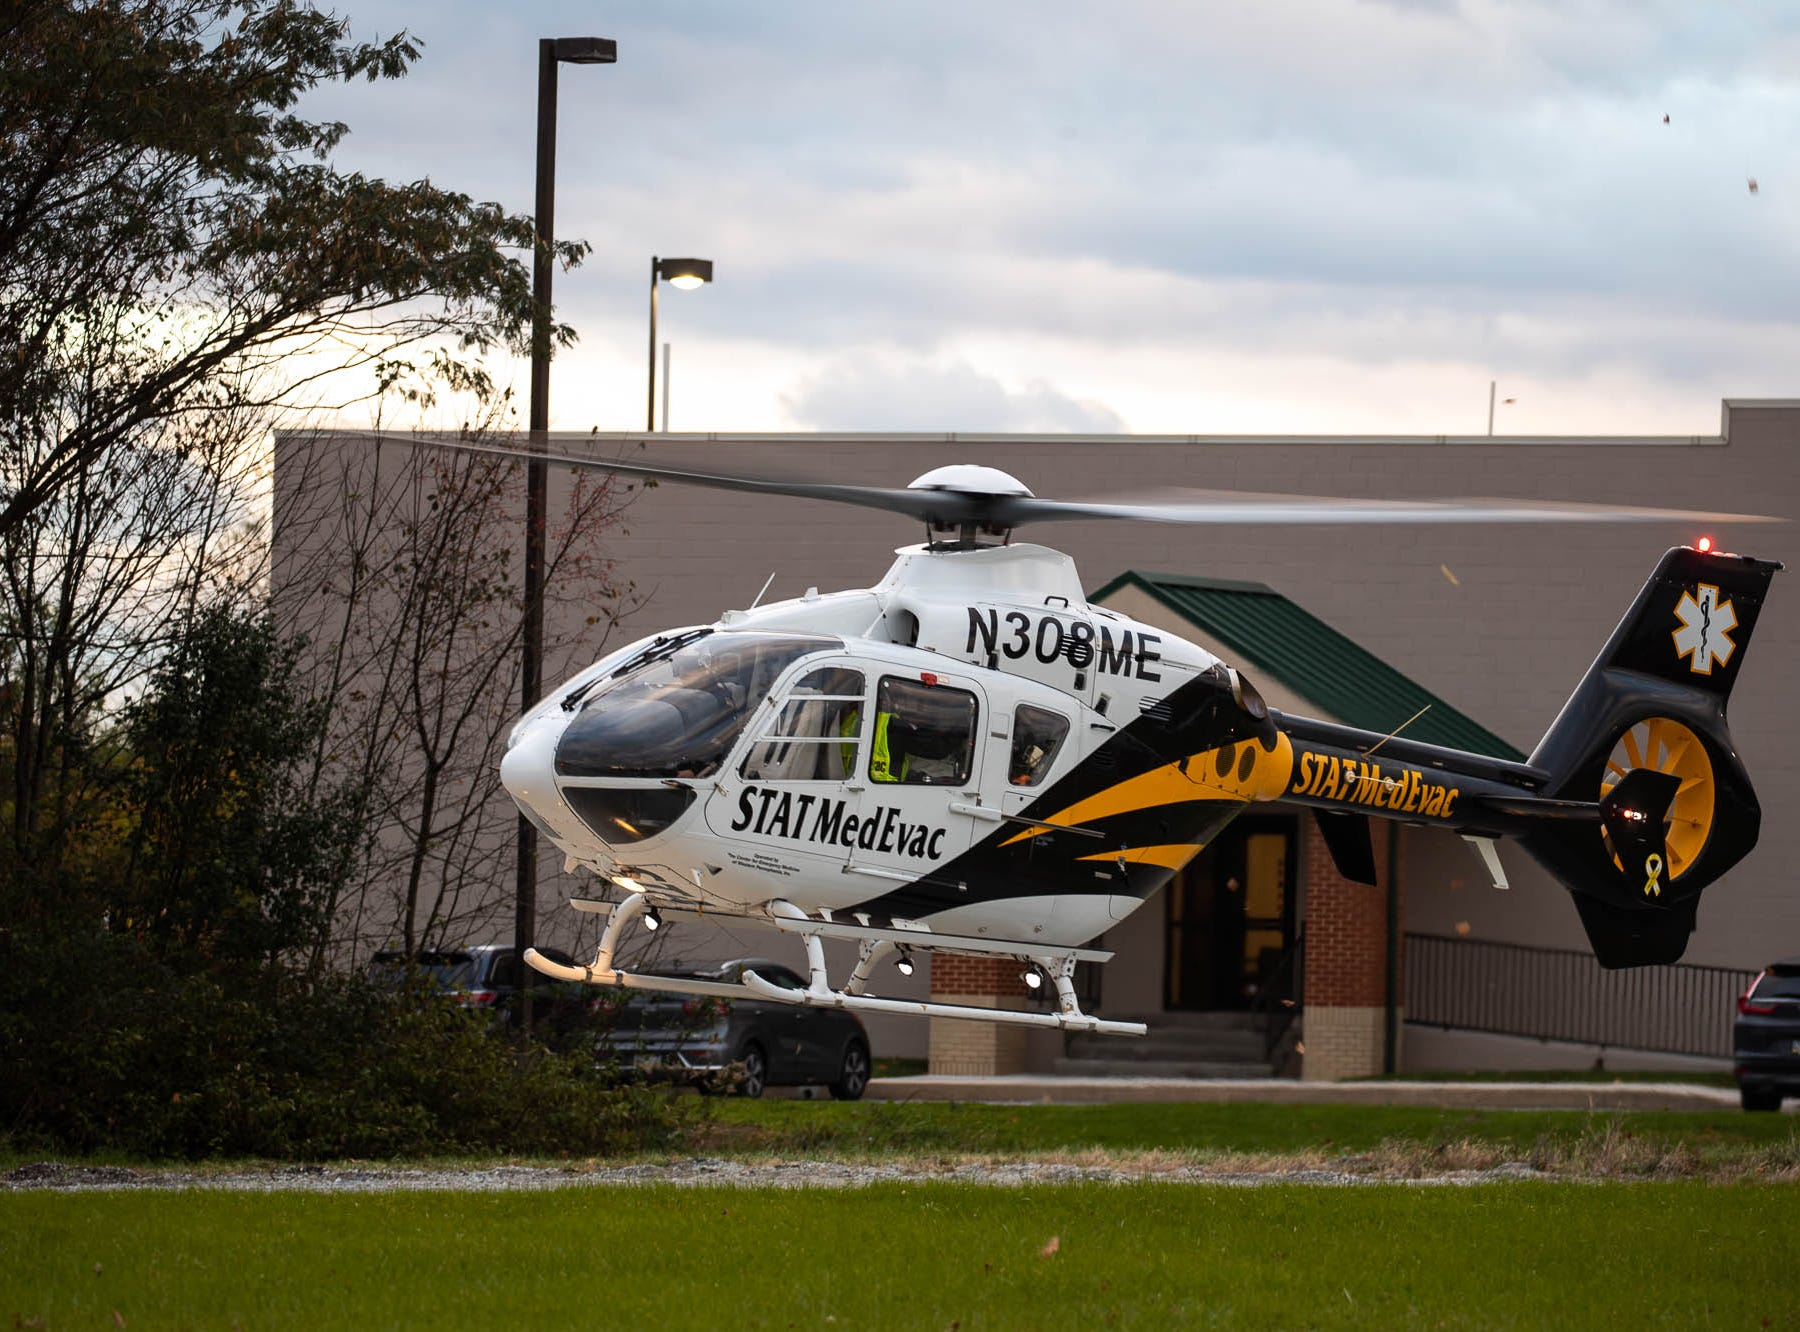 A medical helicopter airlifts a 69-year-old man from a landing zone on the 500 block of West King St. after a domestic-related stabbing on the 300 block of Lexington Way, Monday, Oct. 29, 2018, in Littlestown. Littlestown Police Chief Charles Keller said that a 70-year-old woman stabbed a 69-year-old man, and the man was flown to York Hospital.